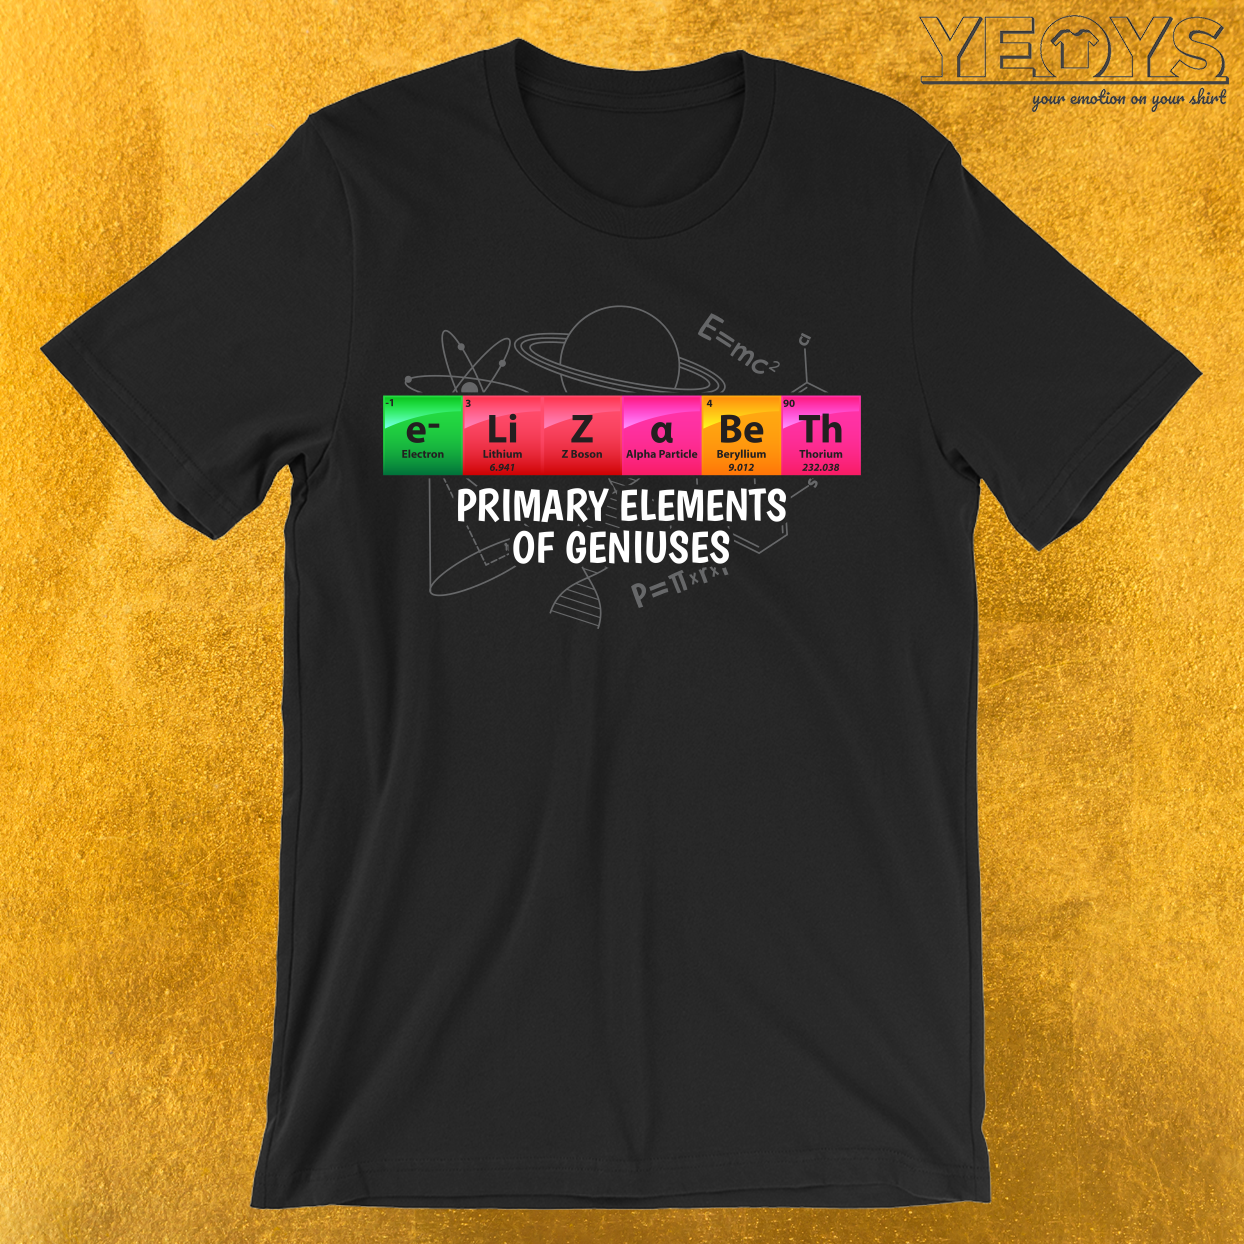 Elizabeth Primary Elements Of Geniuses T-Shirt